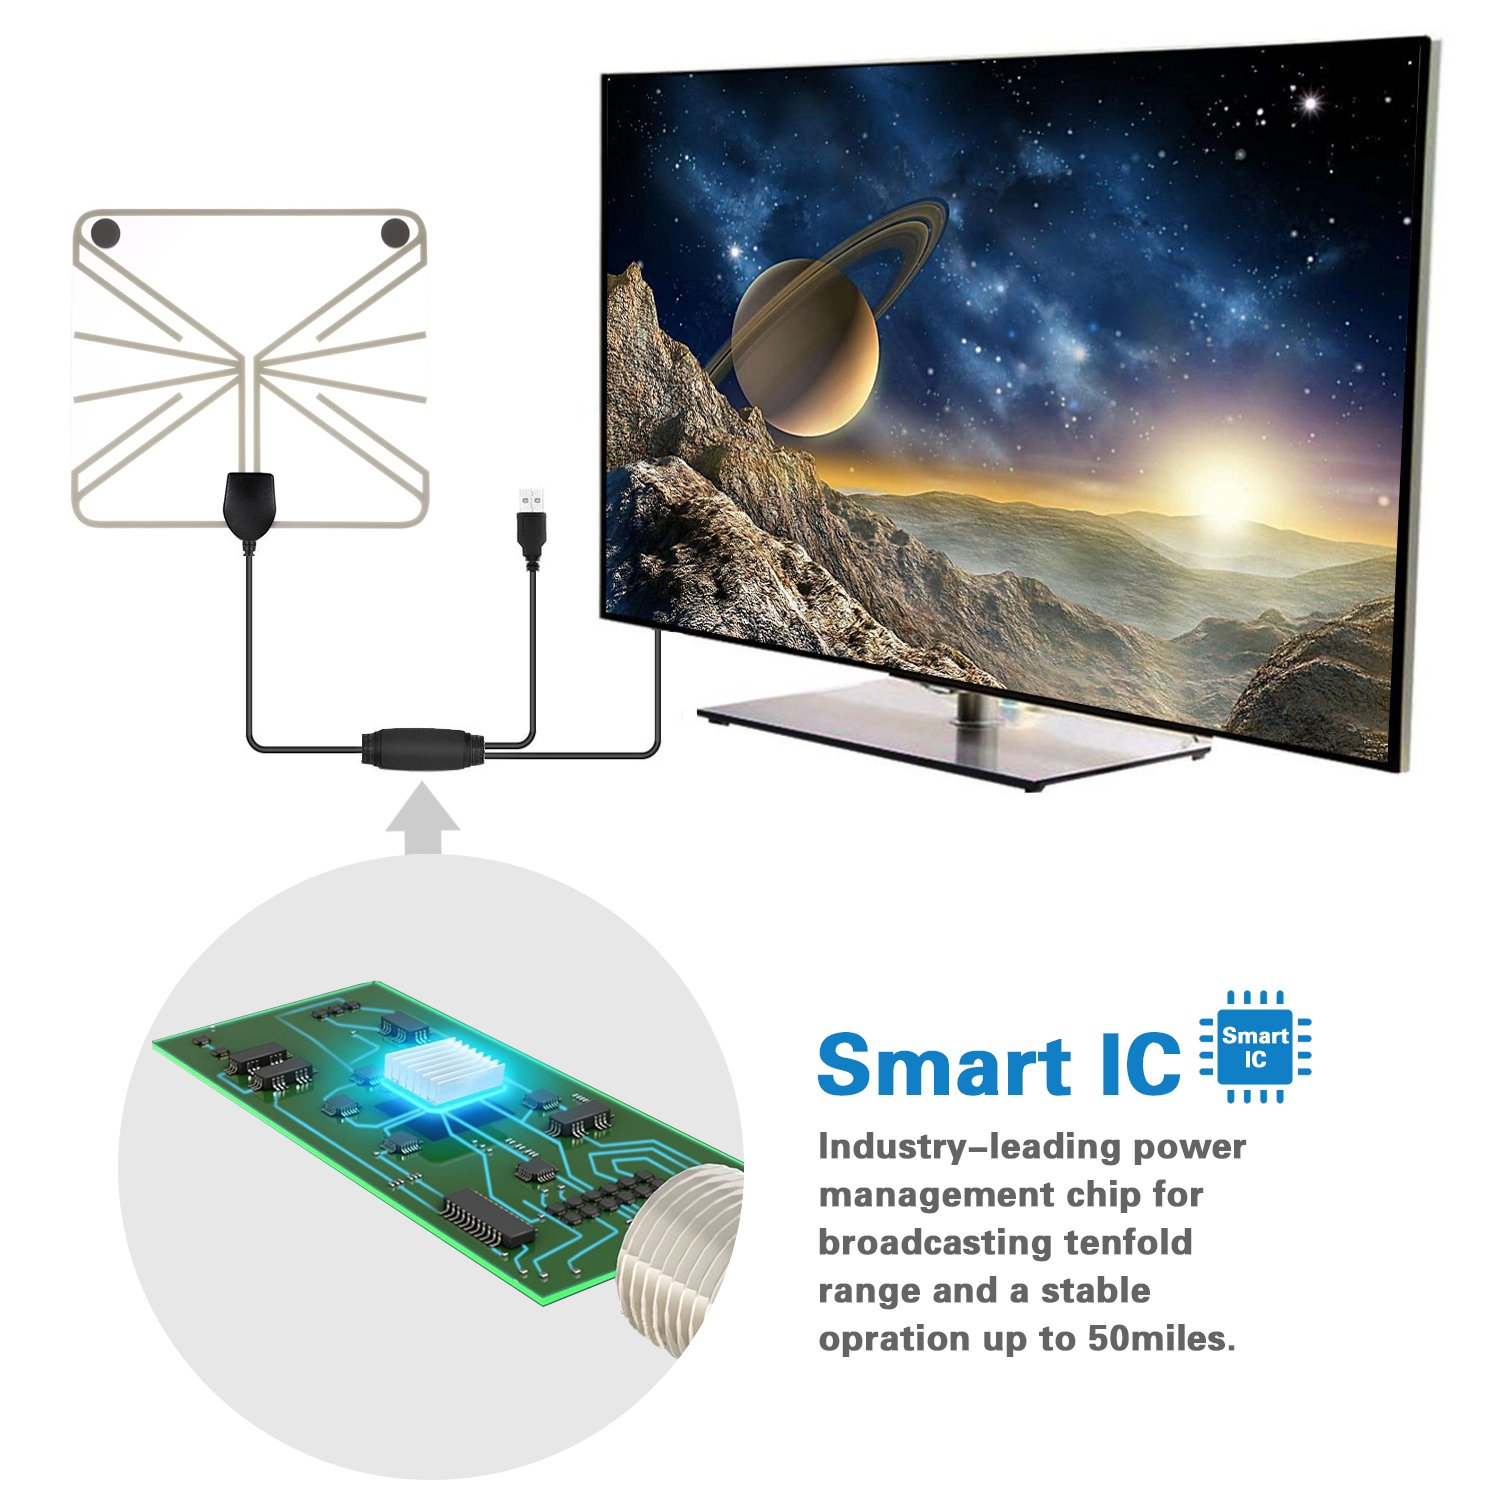 2018 UPGRADED HDTV Antenna Indoor for Highest Performance Digital TV Antenna with 50 Miles Long Range Detachable Amplifier Signal Booster Upgraded Version-10ft Coax Cable(Clear)